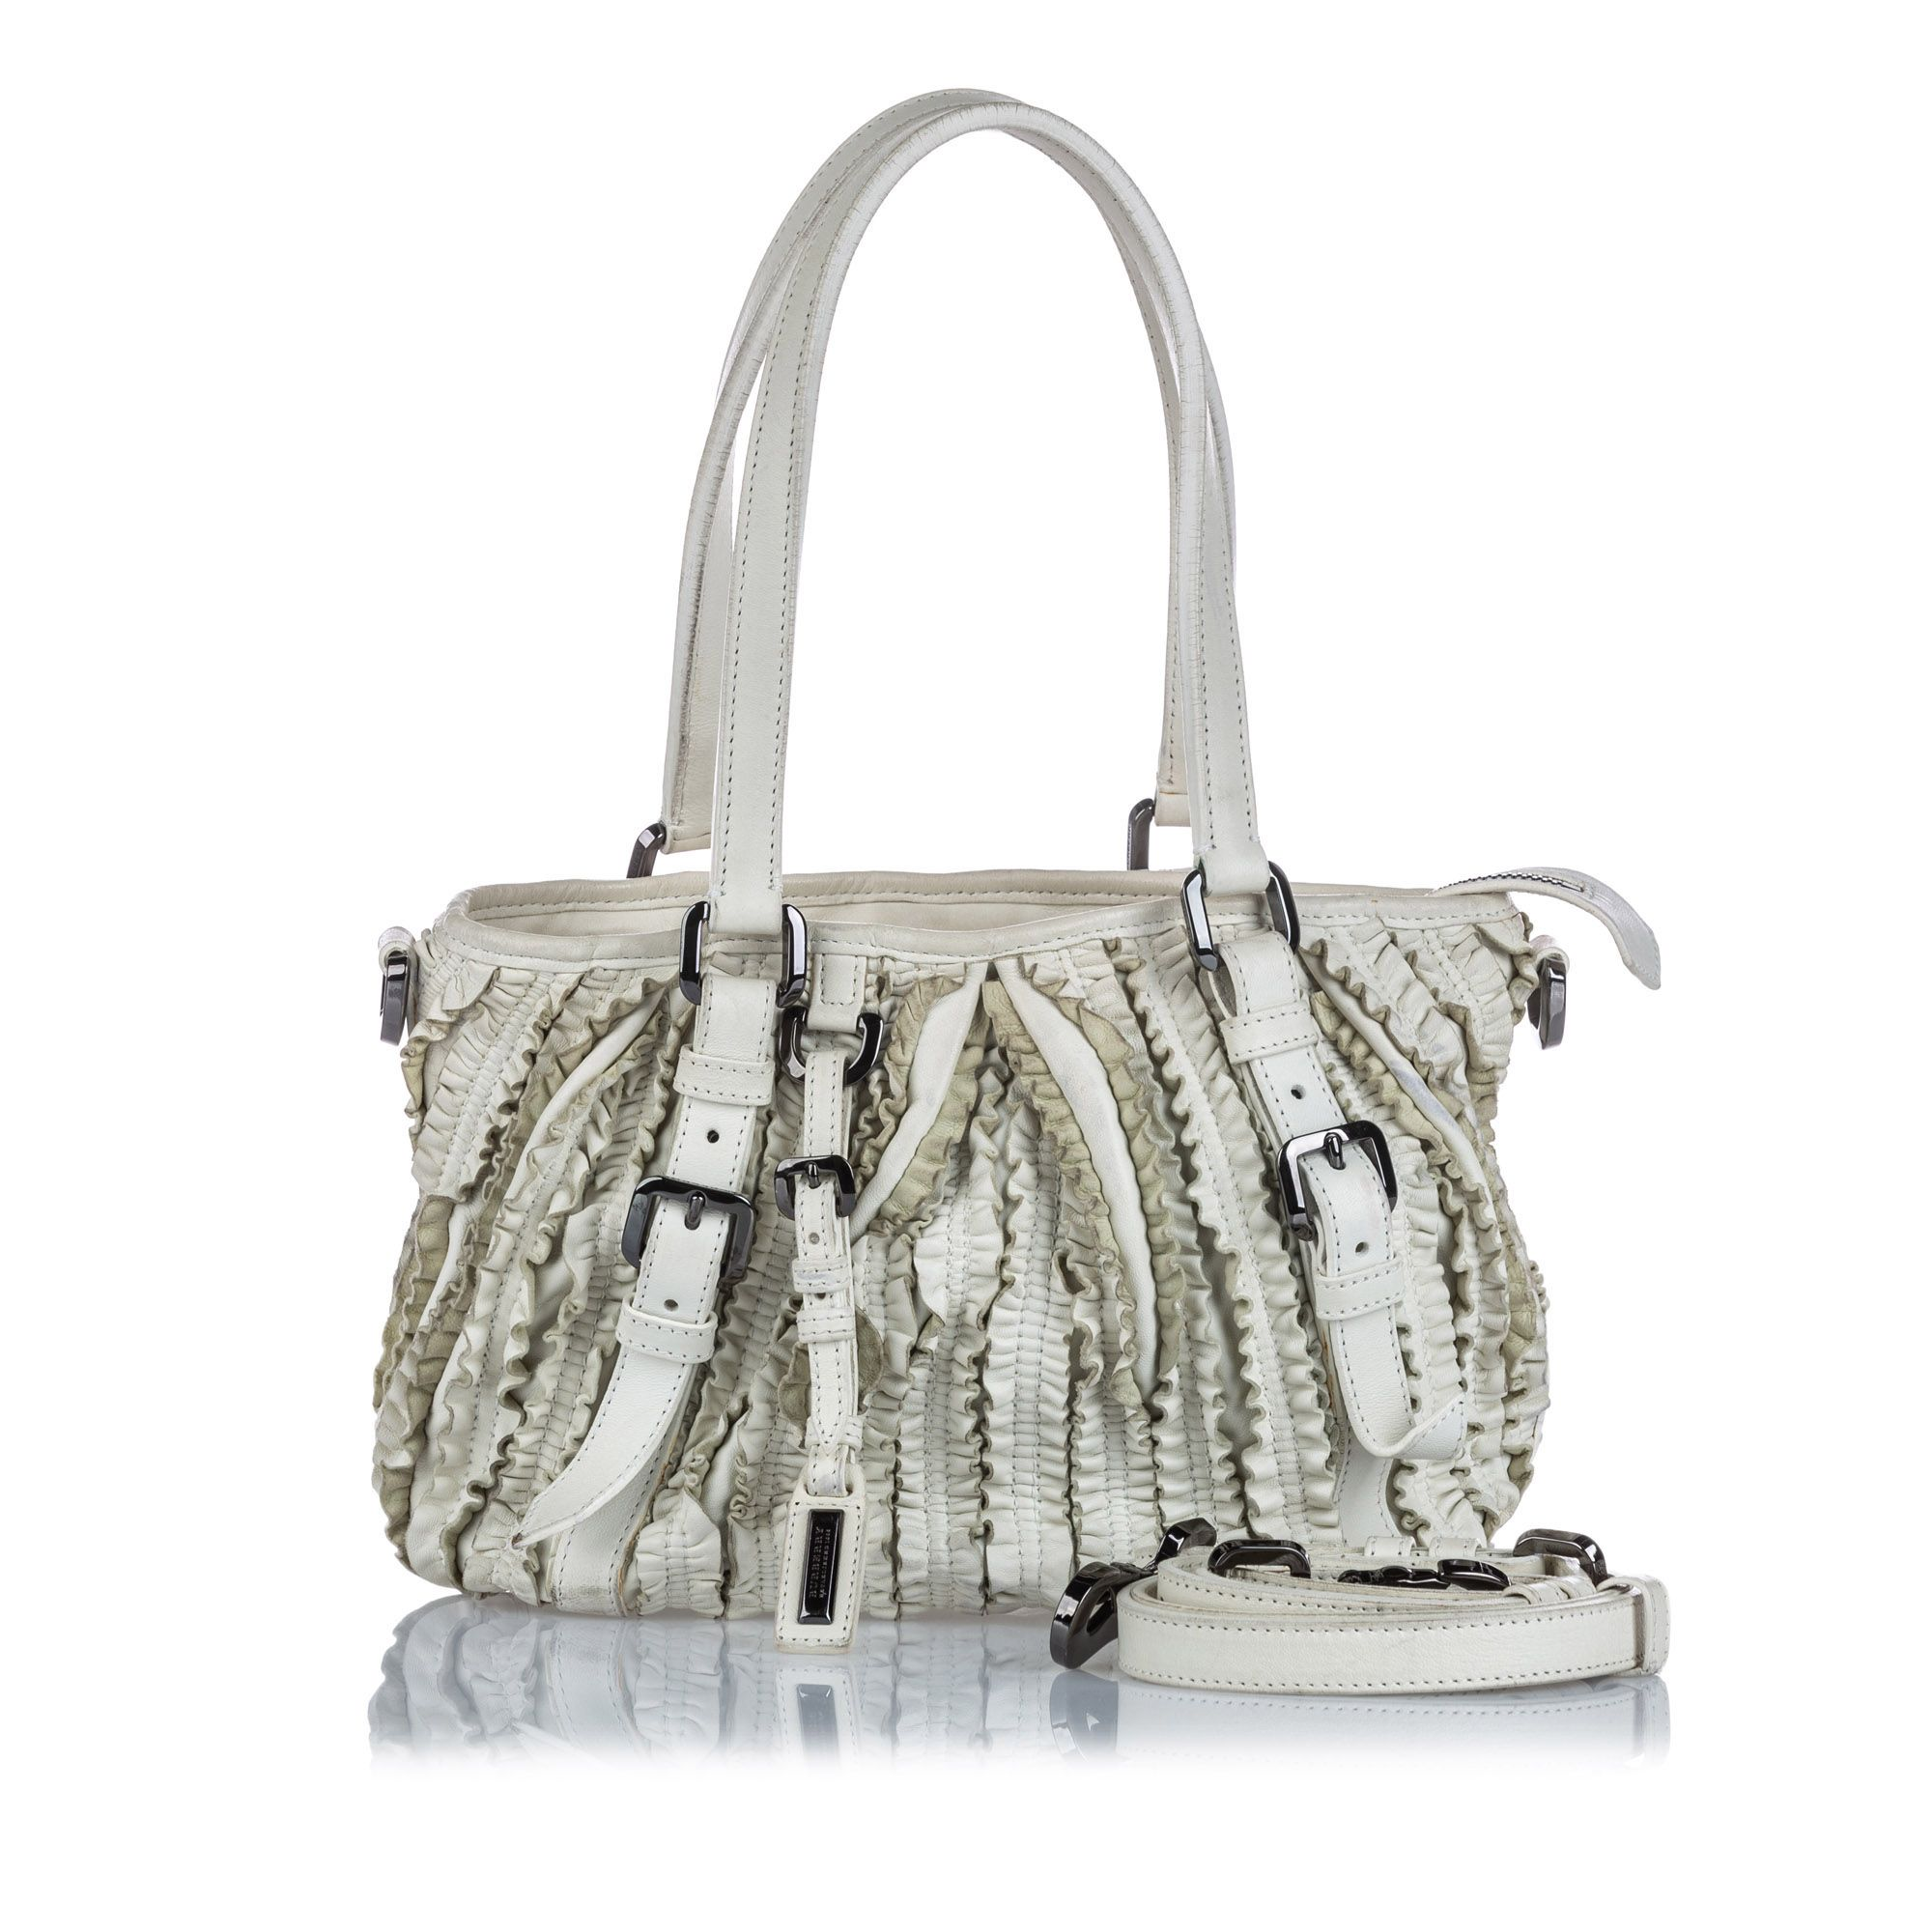 Vintage Burberry Leather Lowry Ruffled Satchel White